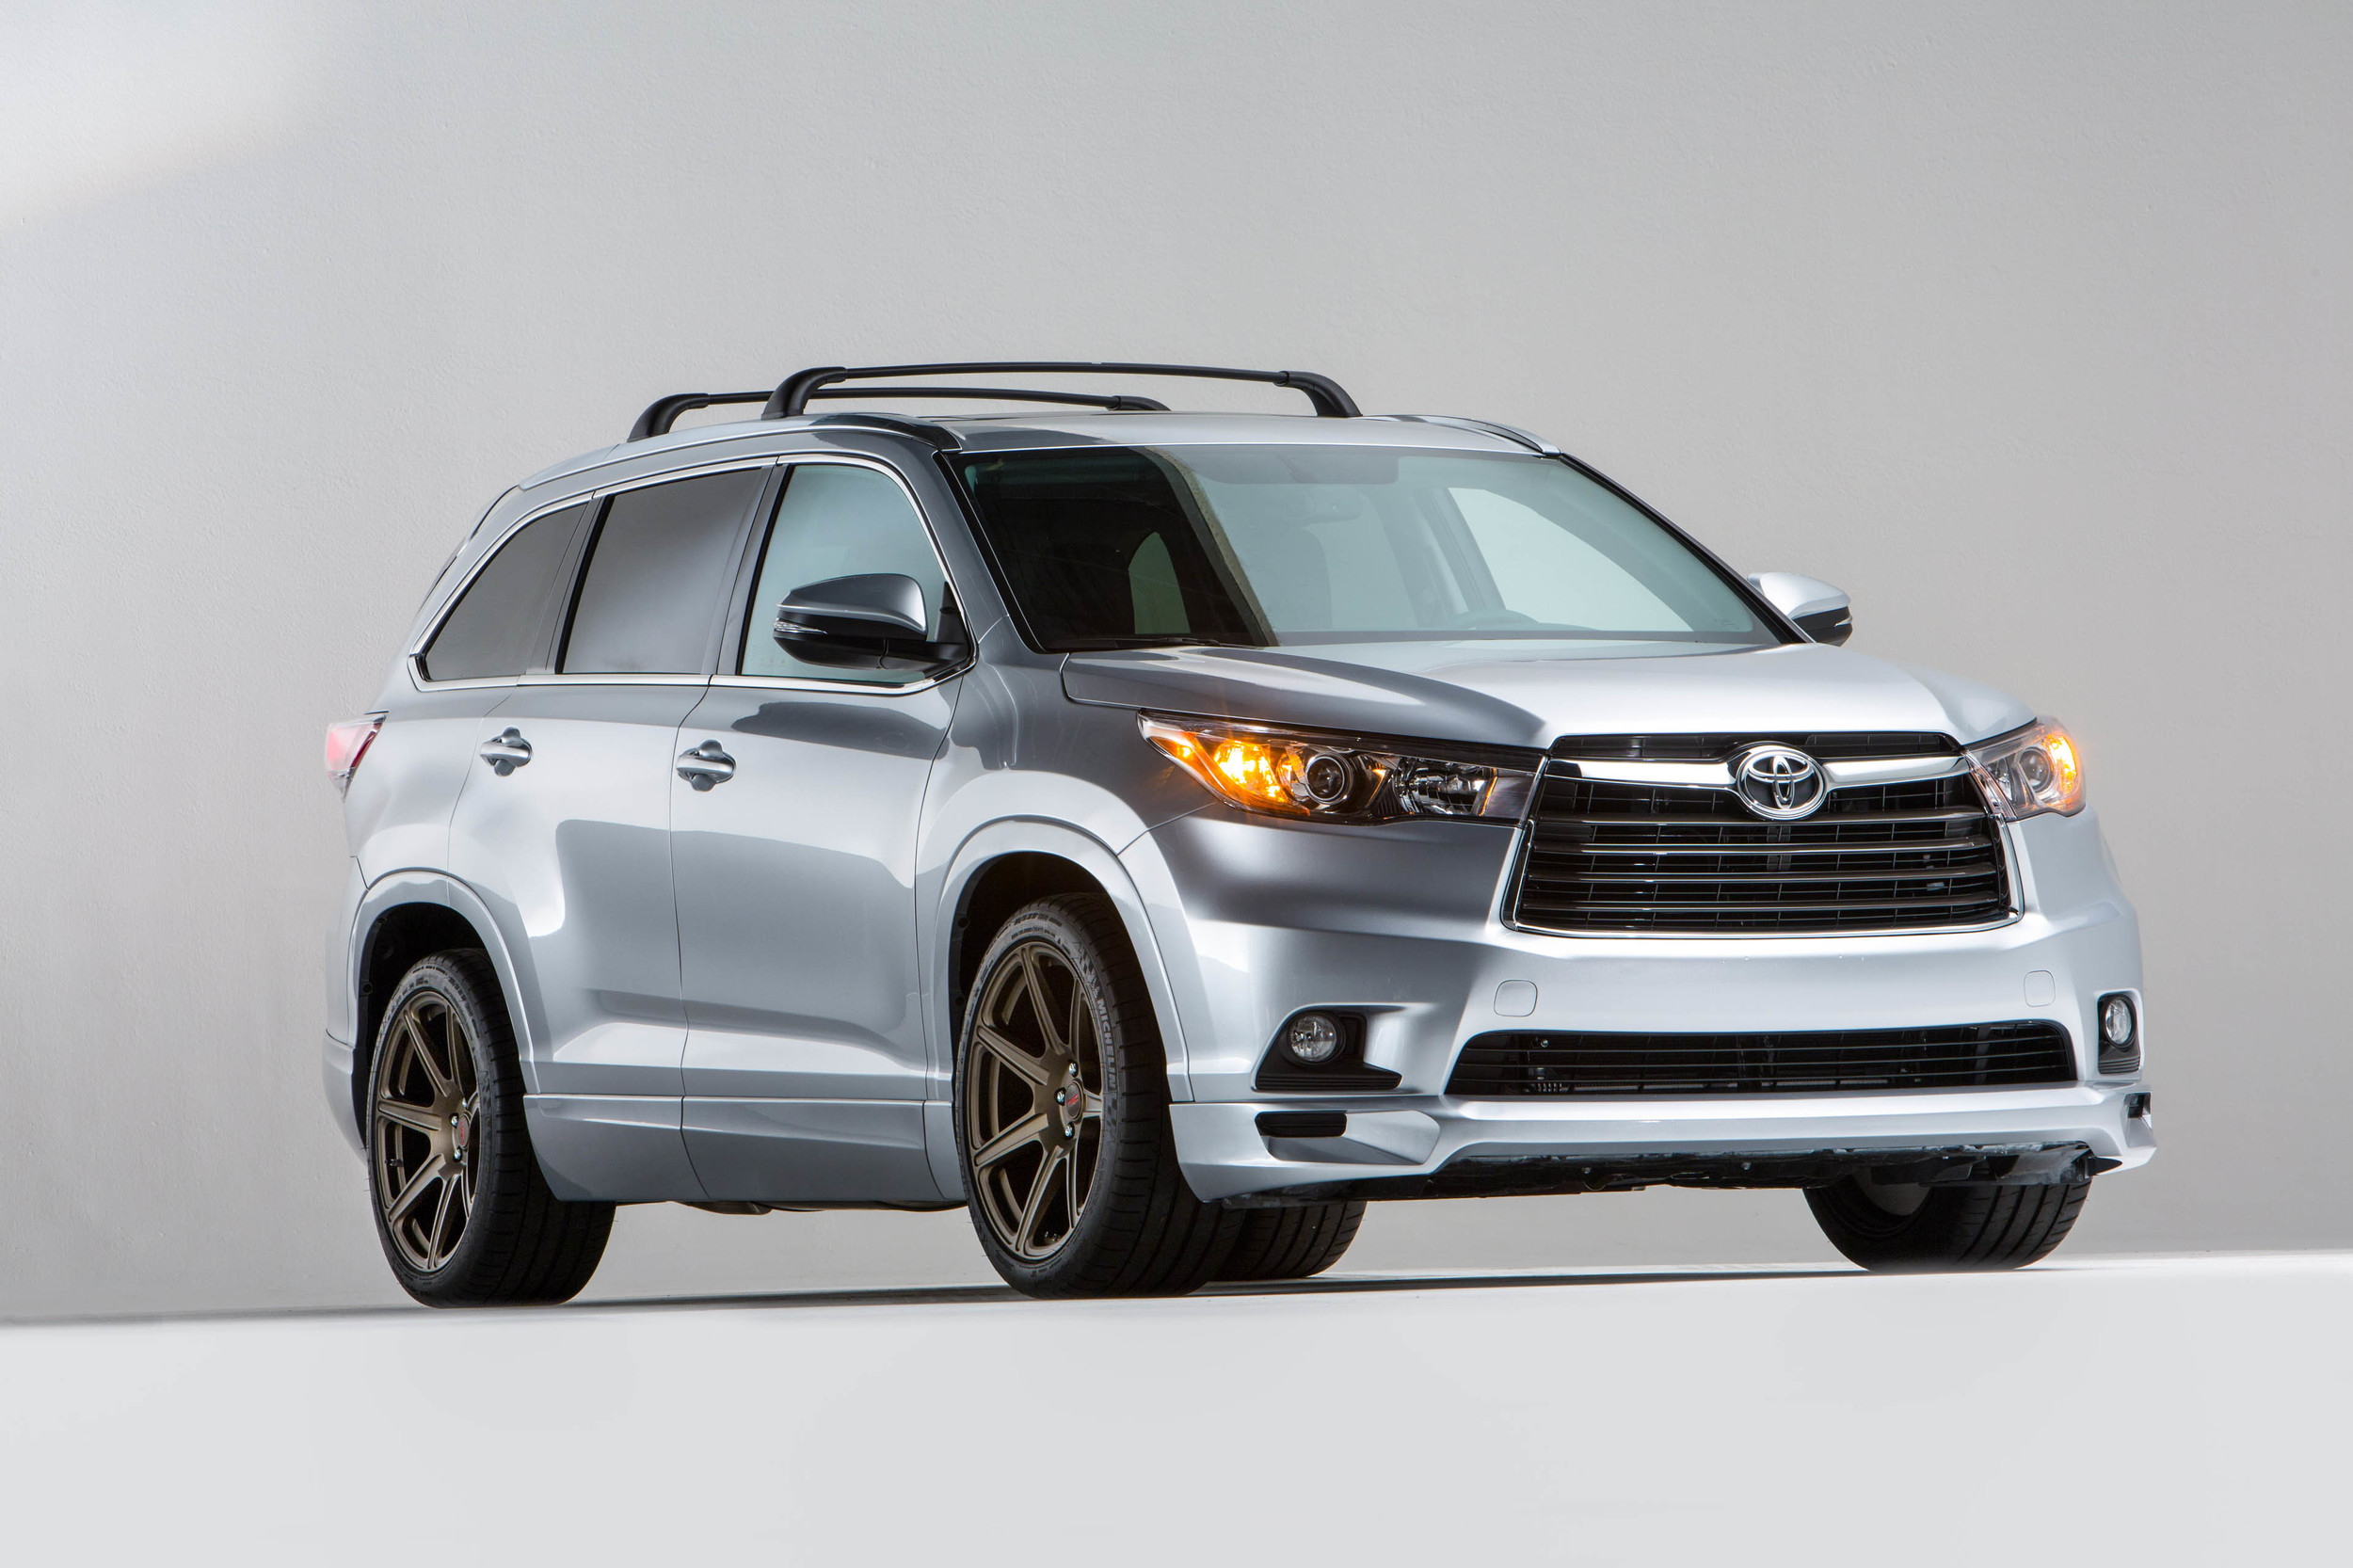 2015 sema highlander concept is beautiful toyota nation forum toyota car and truck forums